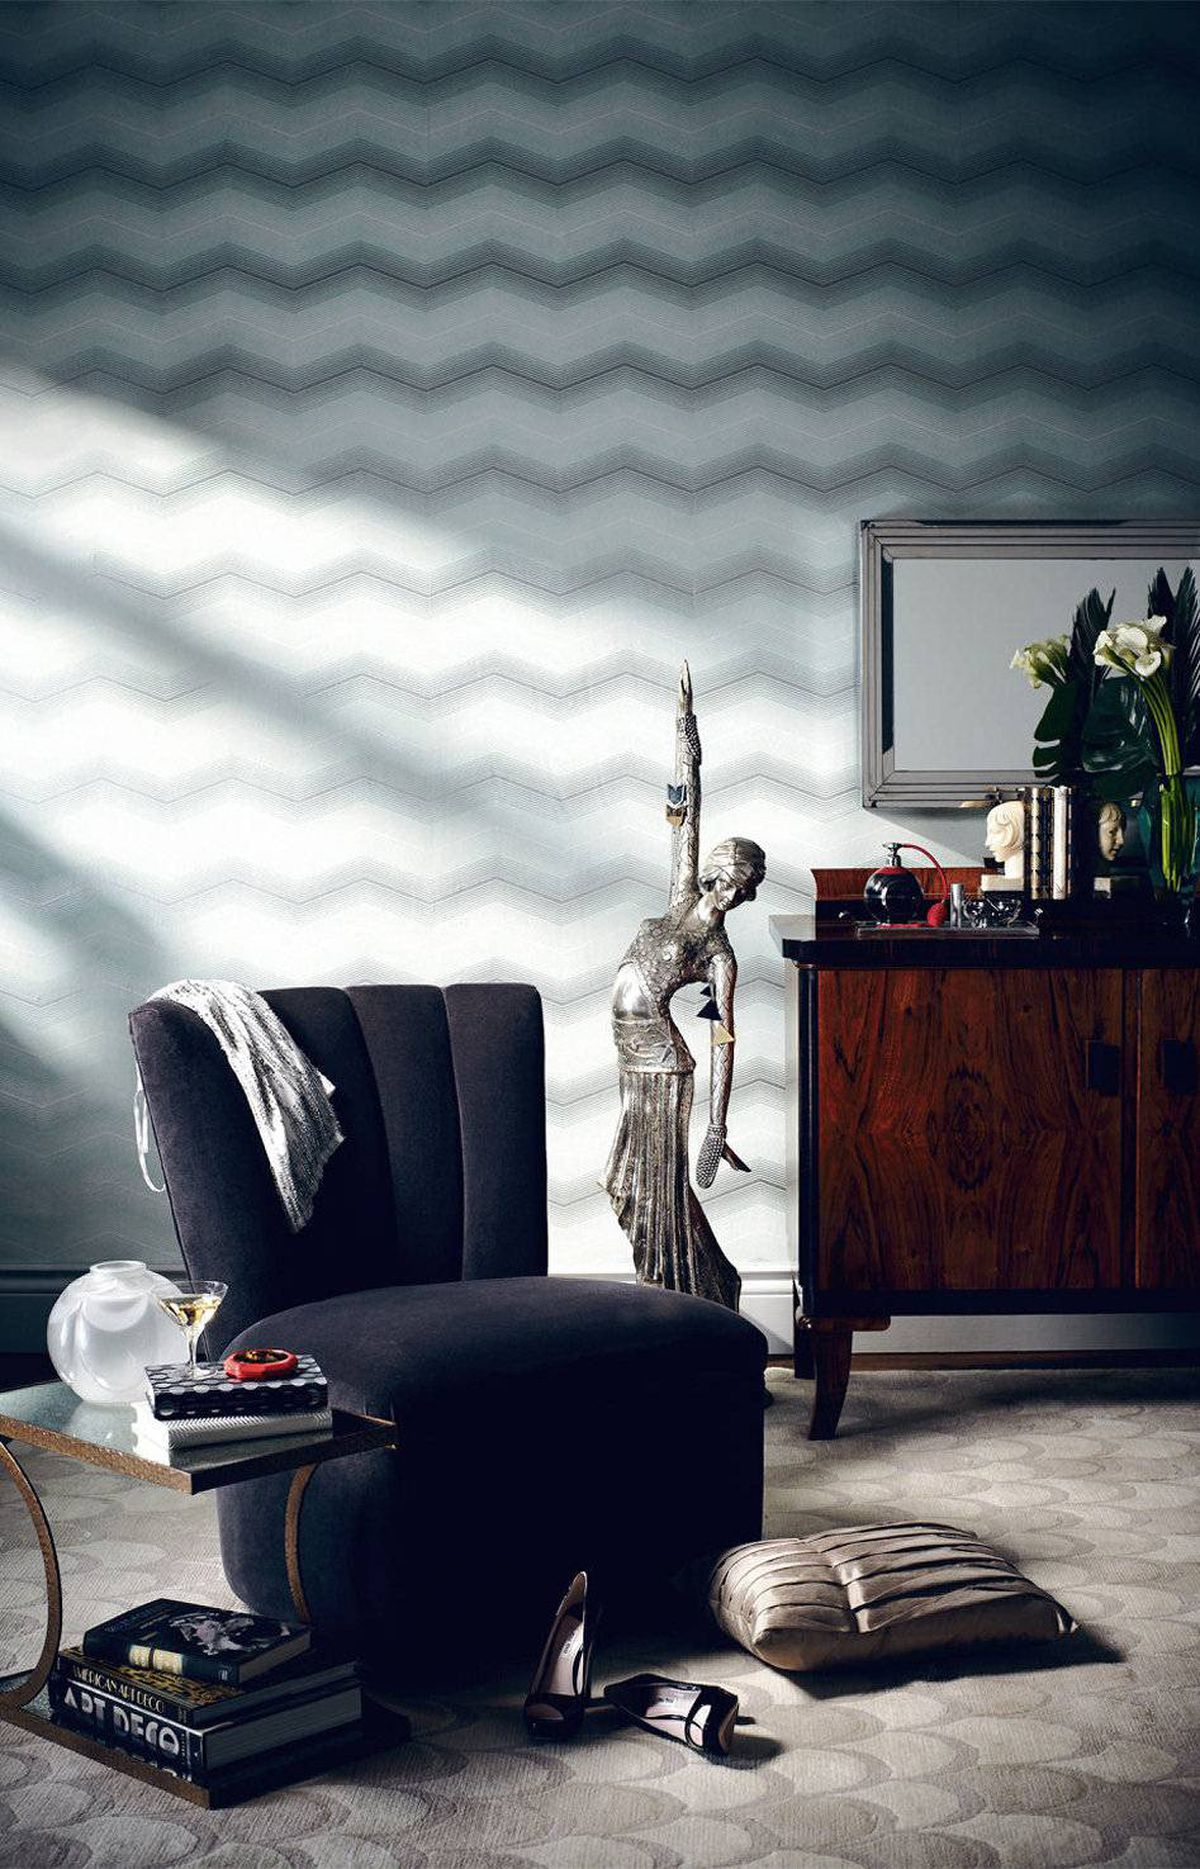 SOFTEN THE EDGES It's the signature mix of strong lines and soft curves that sets art deco apart from other styles. The graphic chevron wallpaper hanging here complements the shapely forms of a shell-patterned carpet and velvet slipper chair.